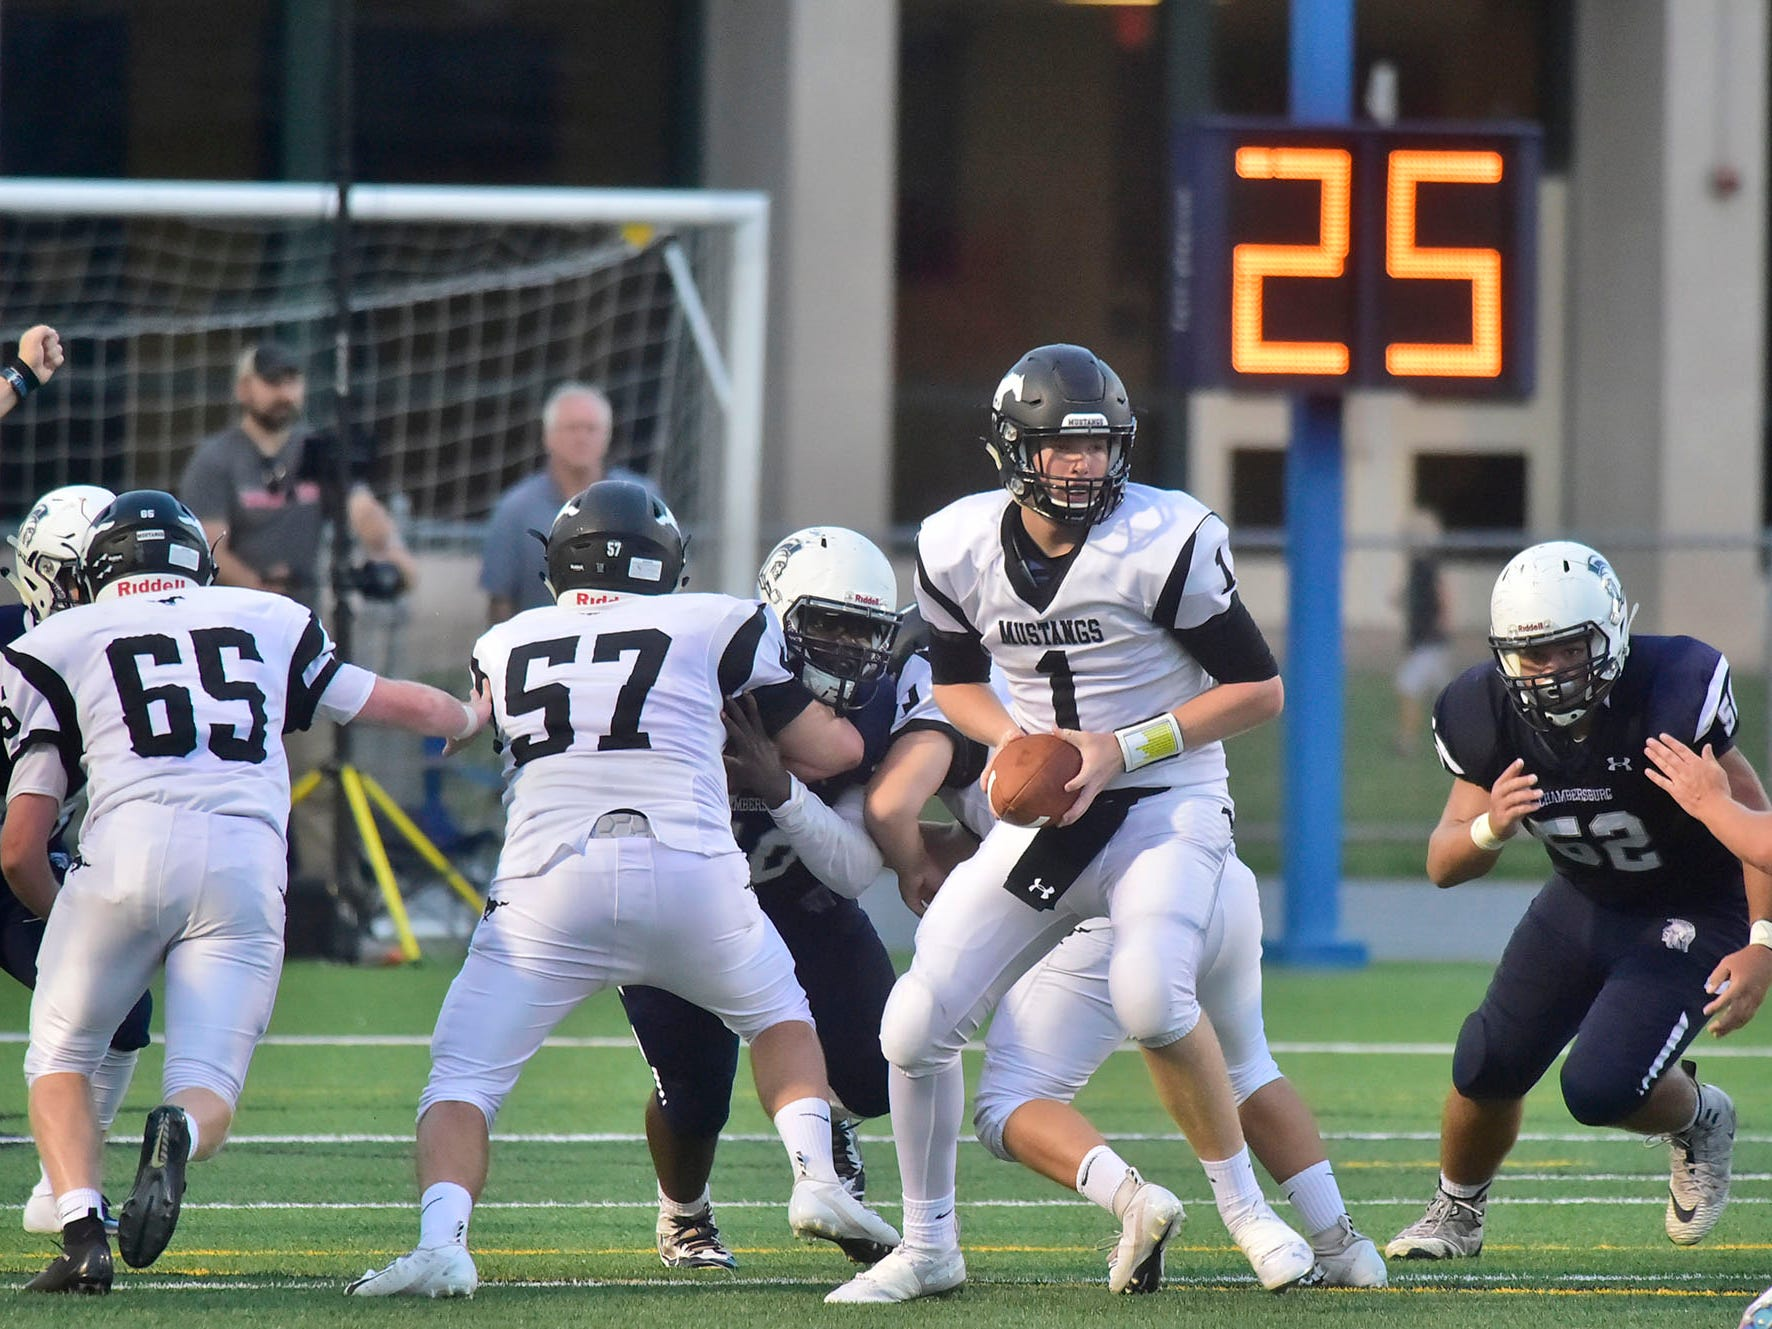 South Western quarterback Derek Huff scrambles for yards. Chambersburg routed South Western 51-26 in football on Friday, Aug. 31, 2018.